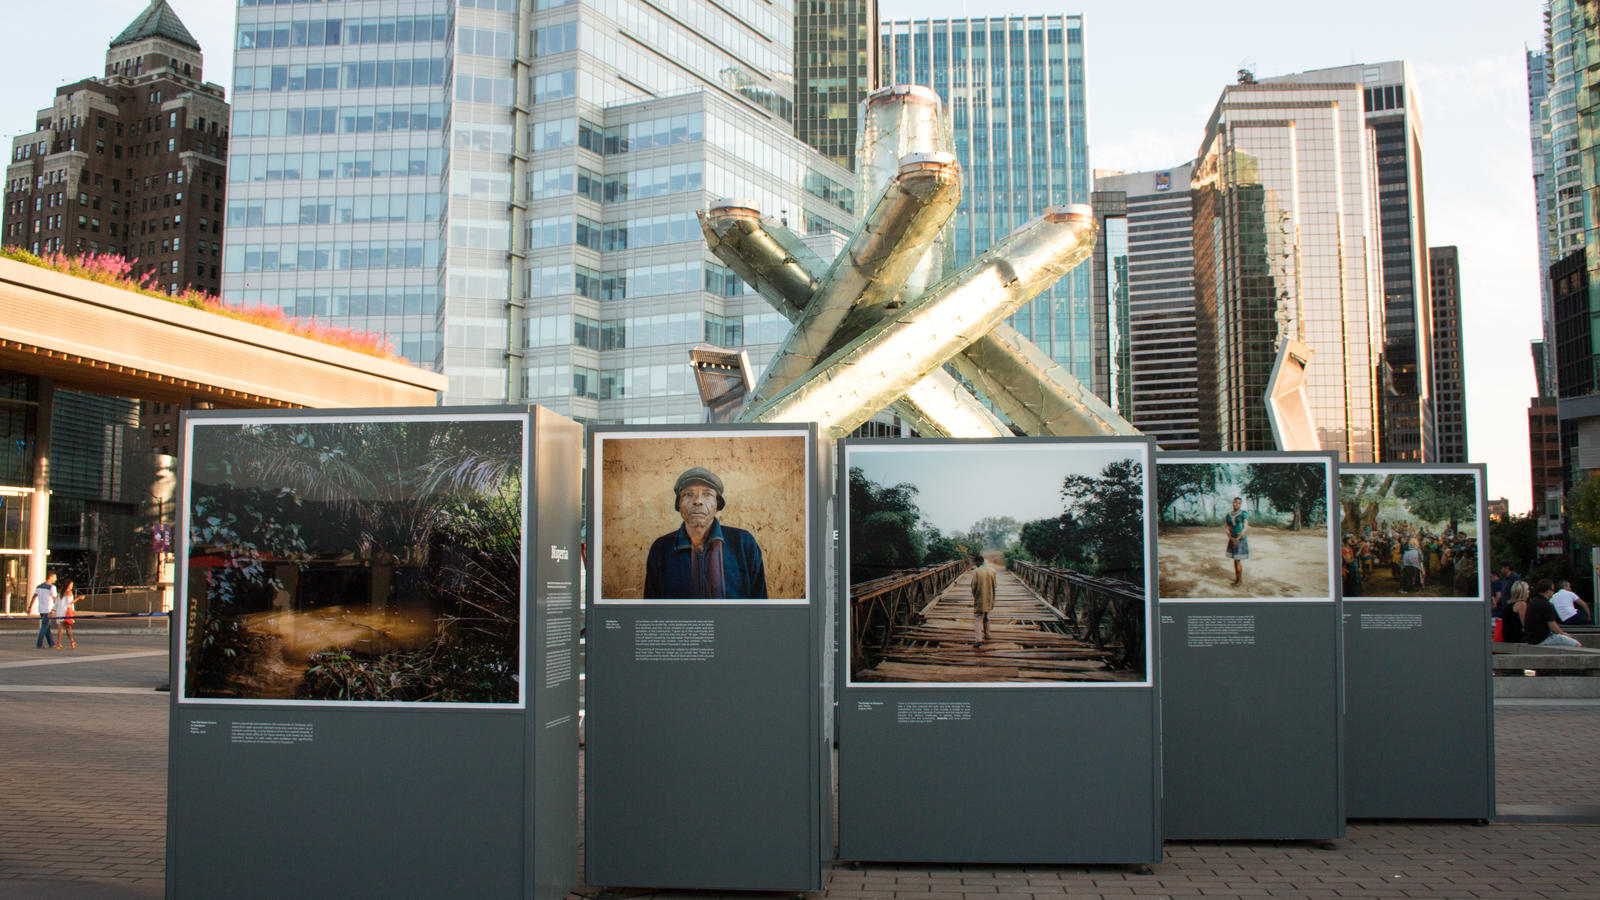 The Water Stories exhibit in Vancouver, BC put on in partnership with HSBC, WWF and Earthwatch.